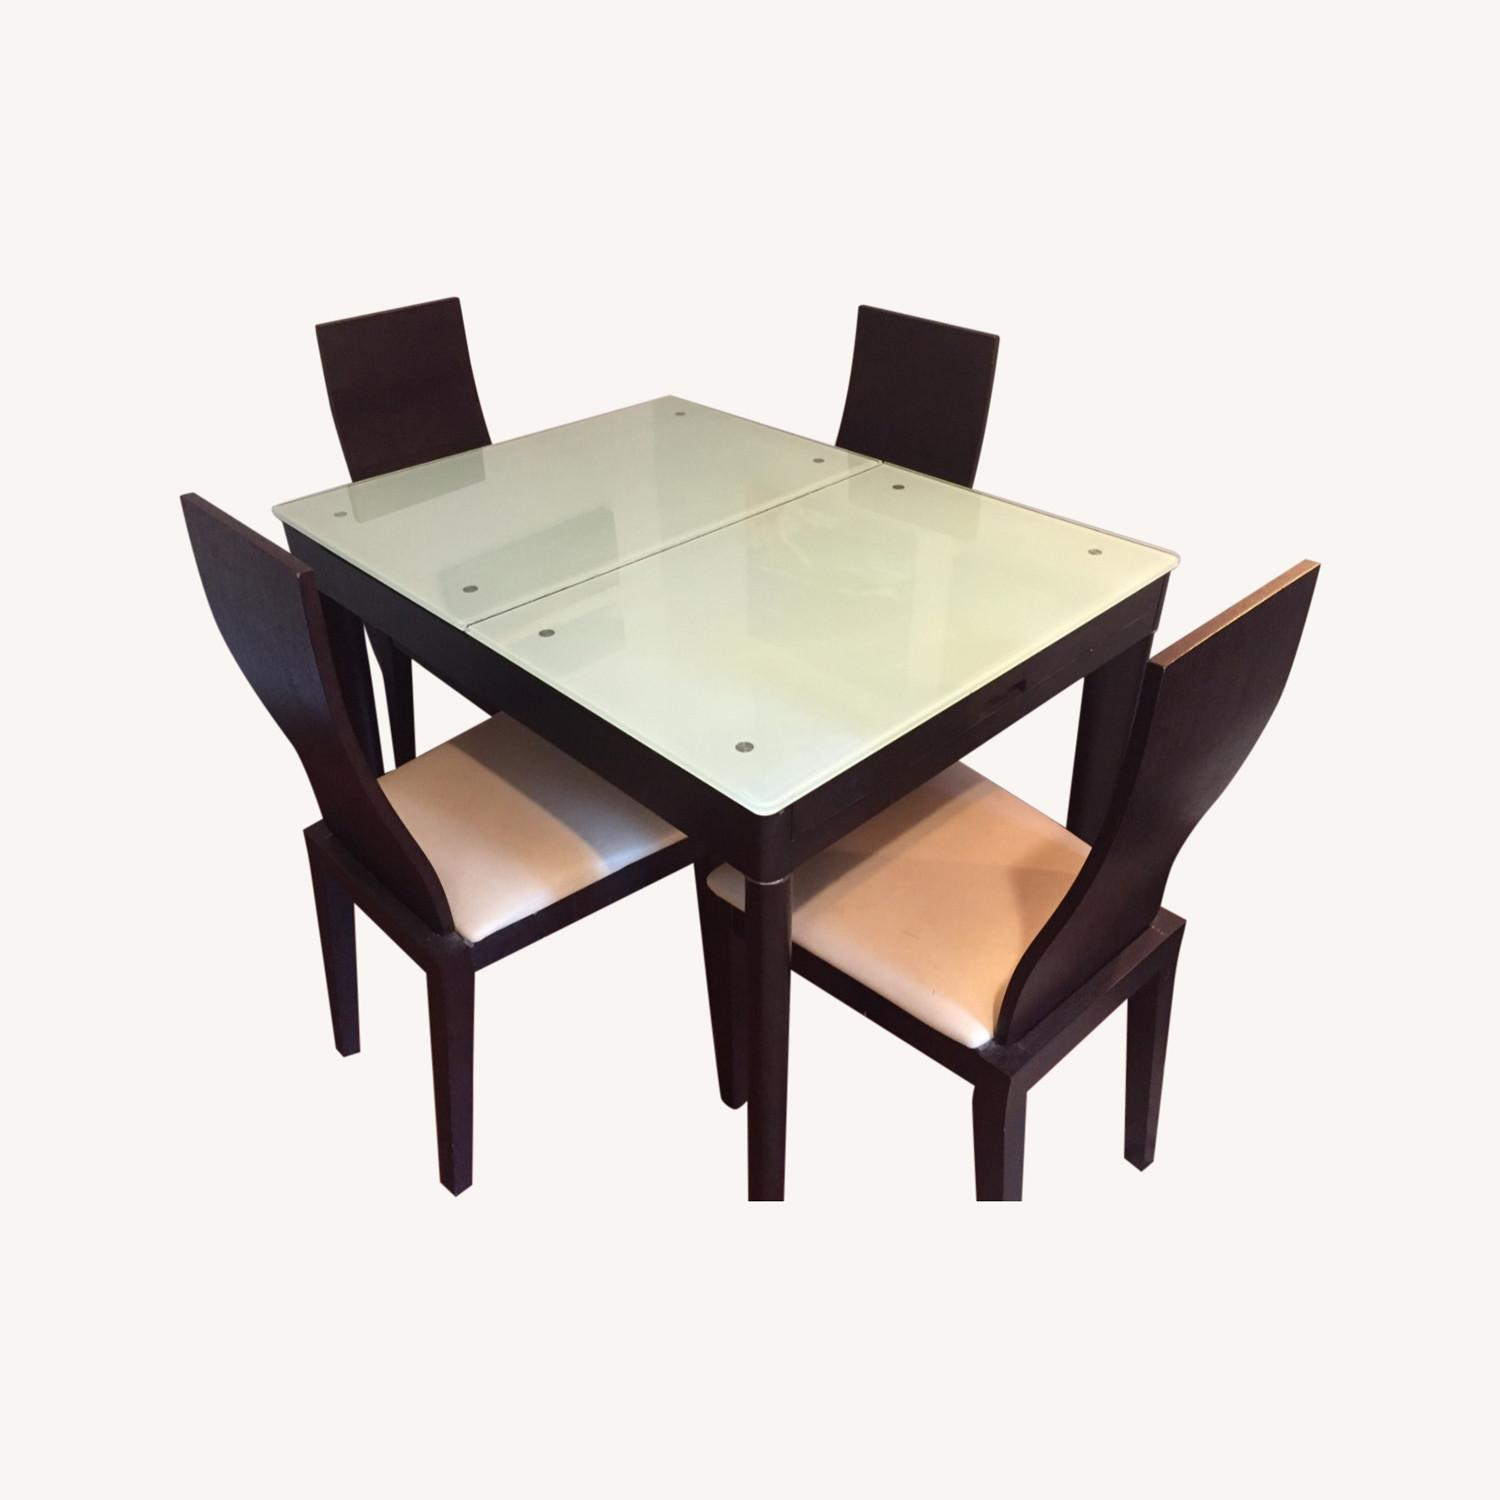 Calligaris Italian Extendable Dining Table Set with 4 Chairs - image-0